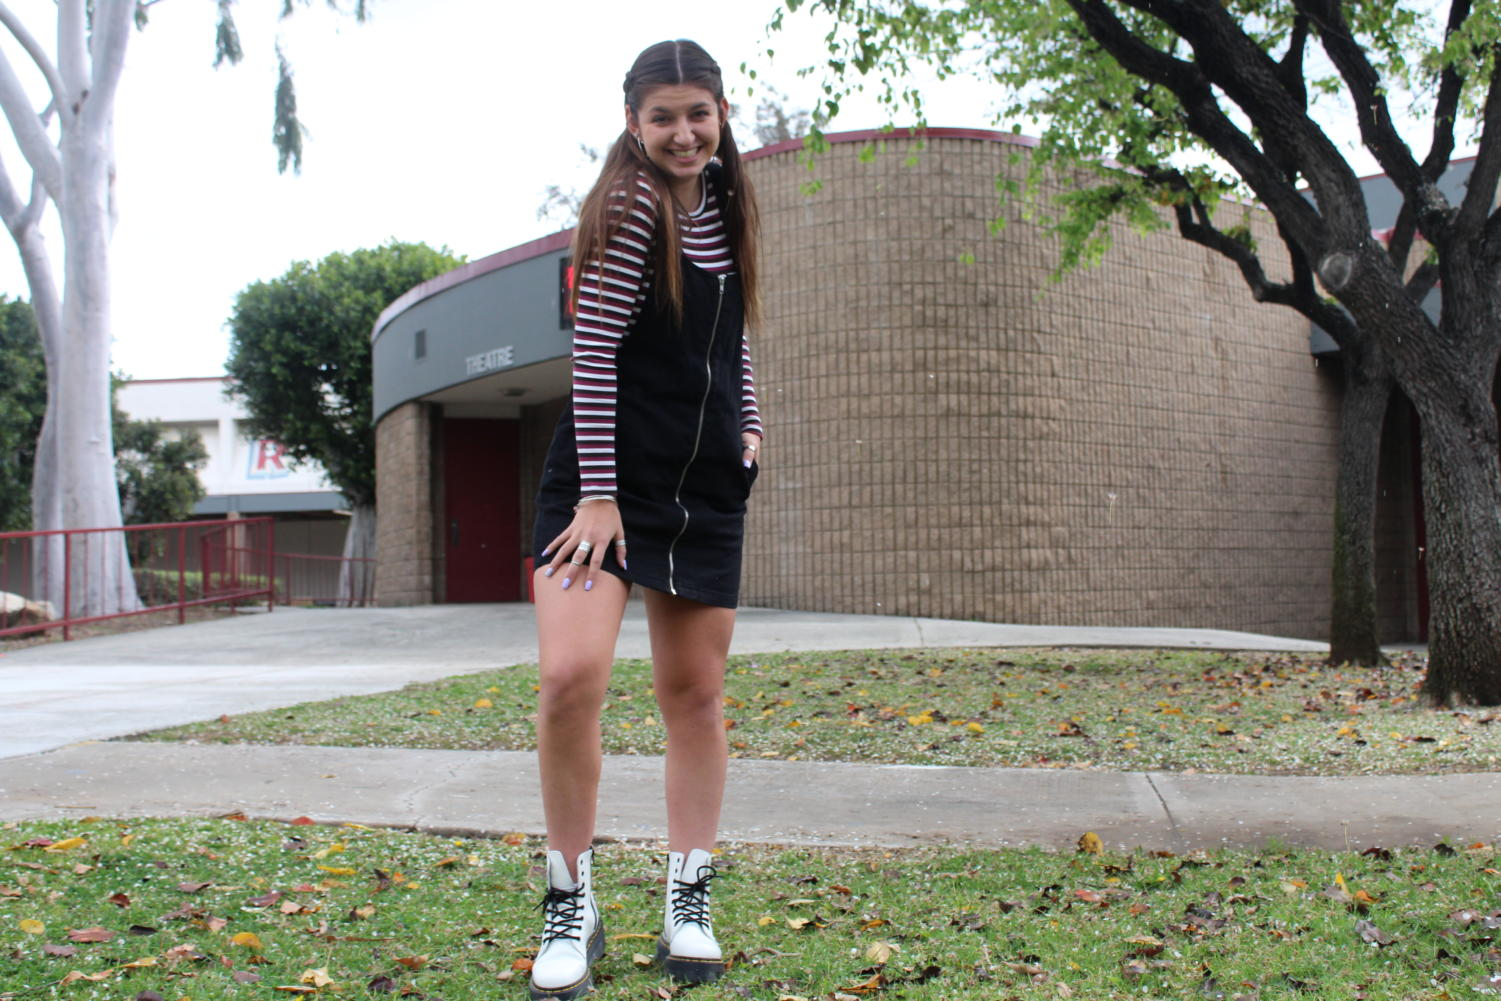 Chloe Masciale bringing back that 90's fashion with her Doc Martens.